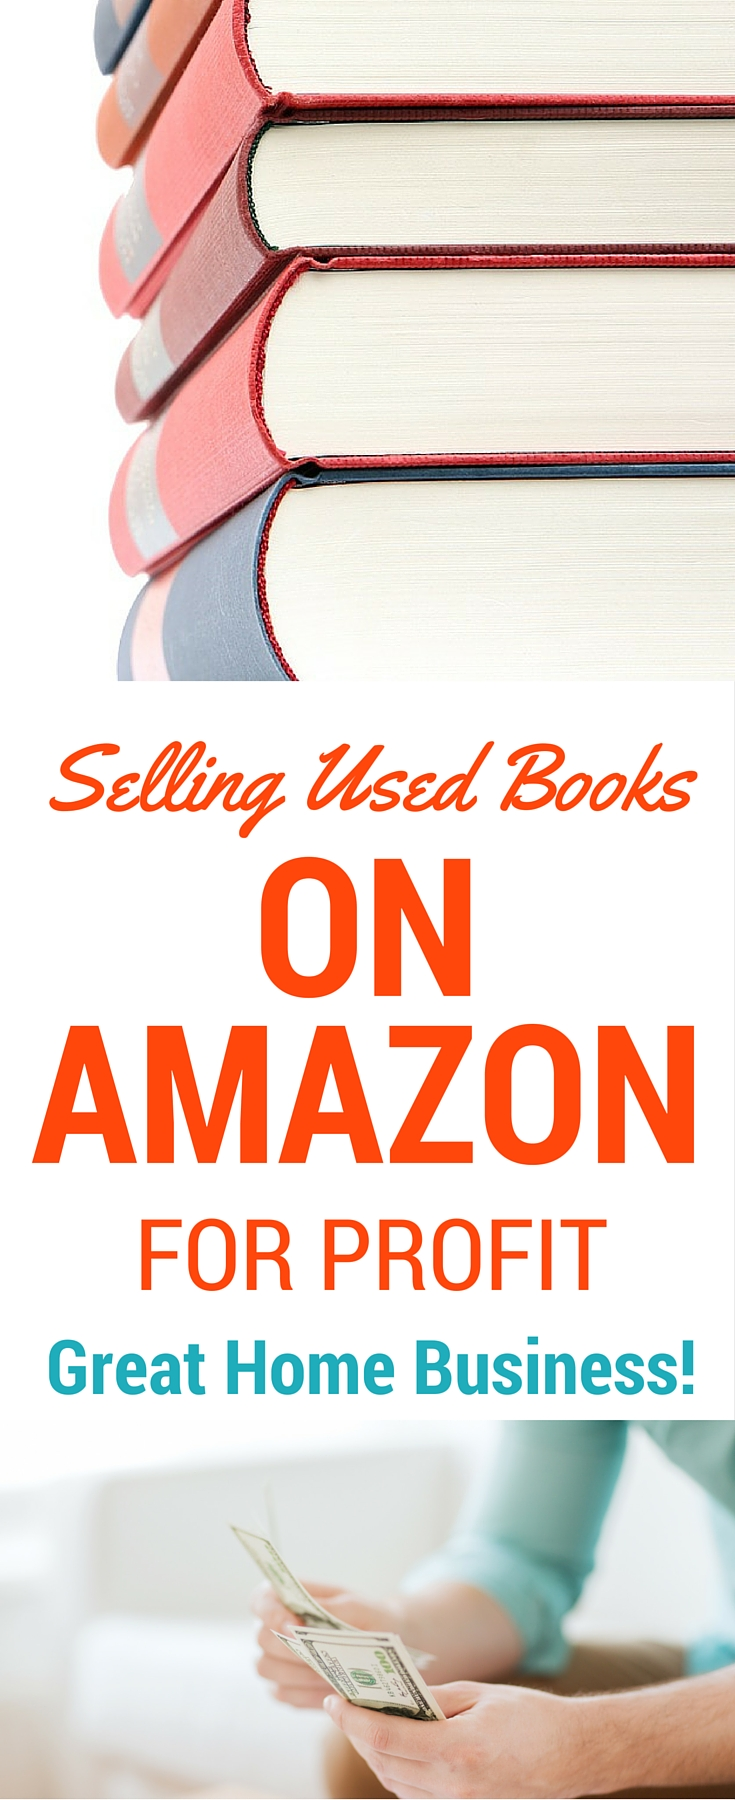 Selling books on eBay, Amazon, and the Internet is one of the easiest online businesses to start. The most difficult problem that eBay and other online sellers have today is finding merchandise they can sell at a profit. Selling used books solves this problem because there is a ready market for used books—and there is ample supply at great.